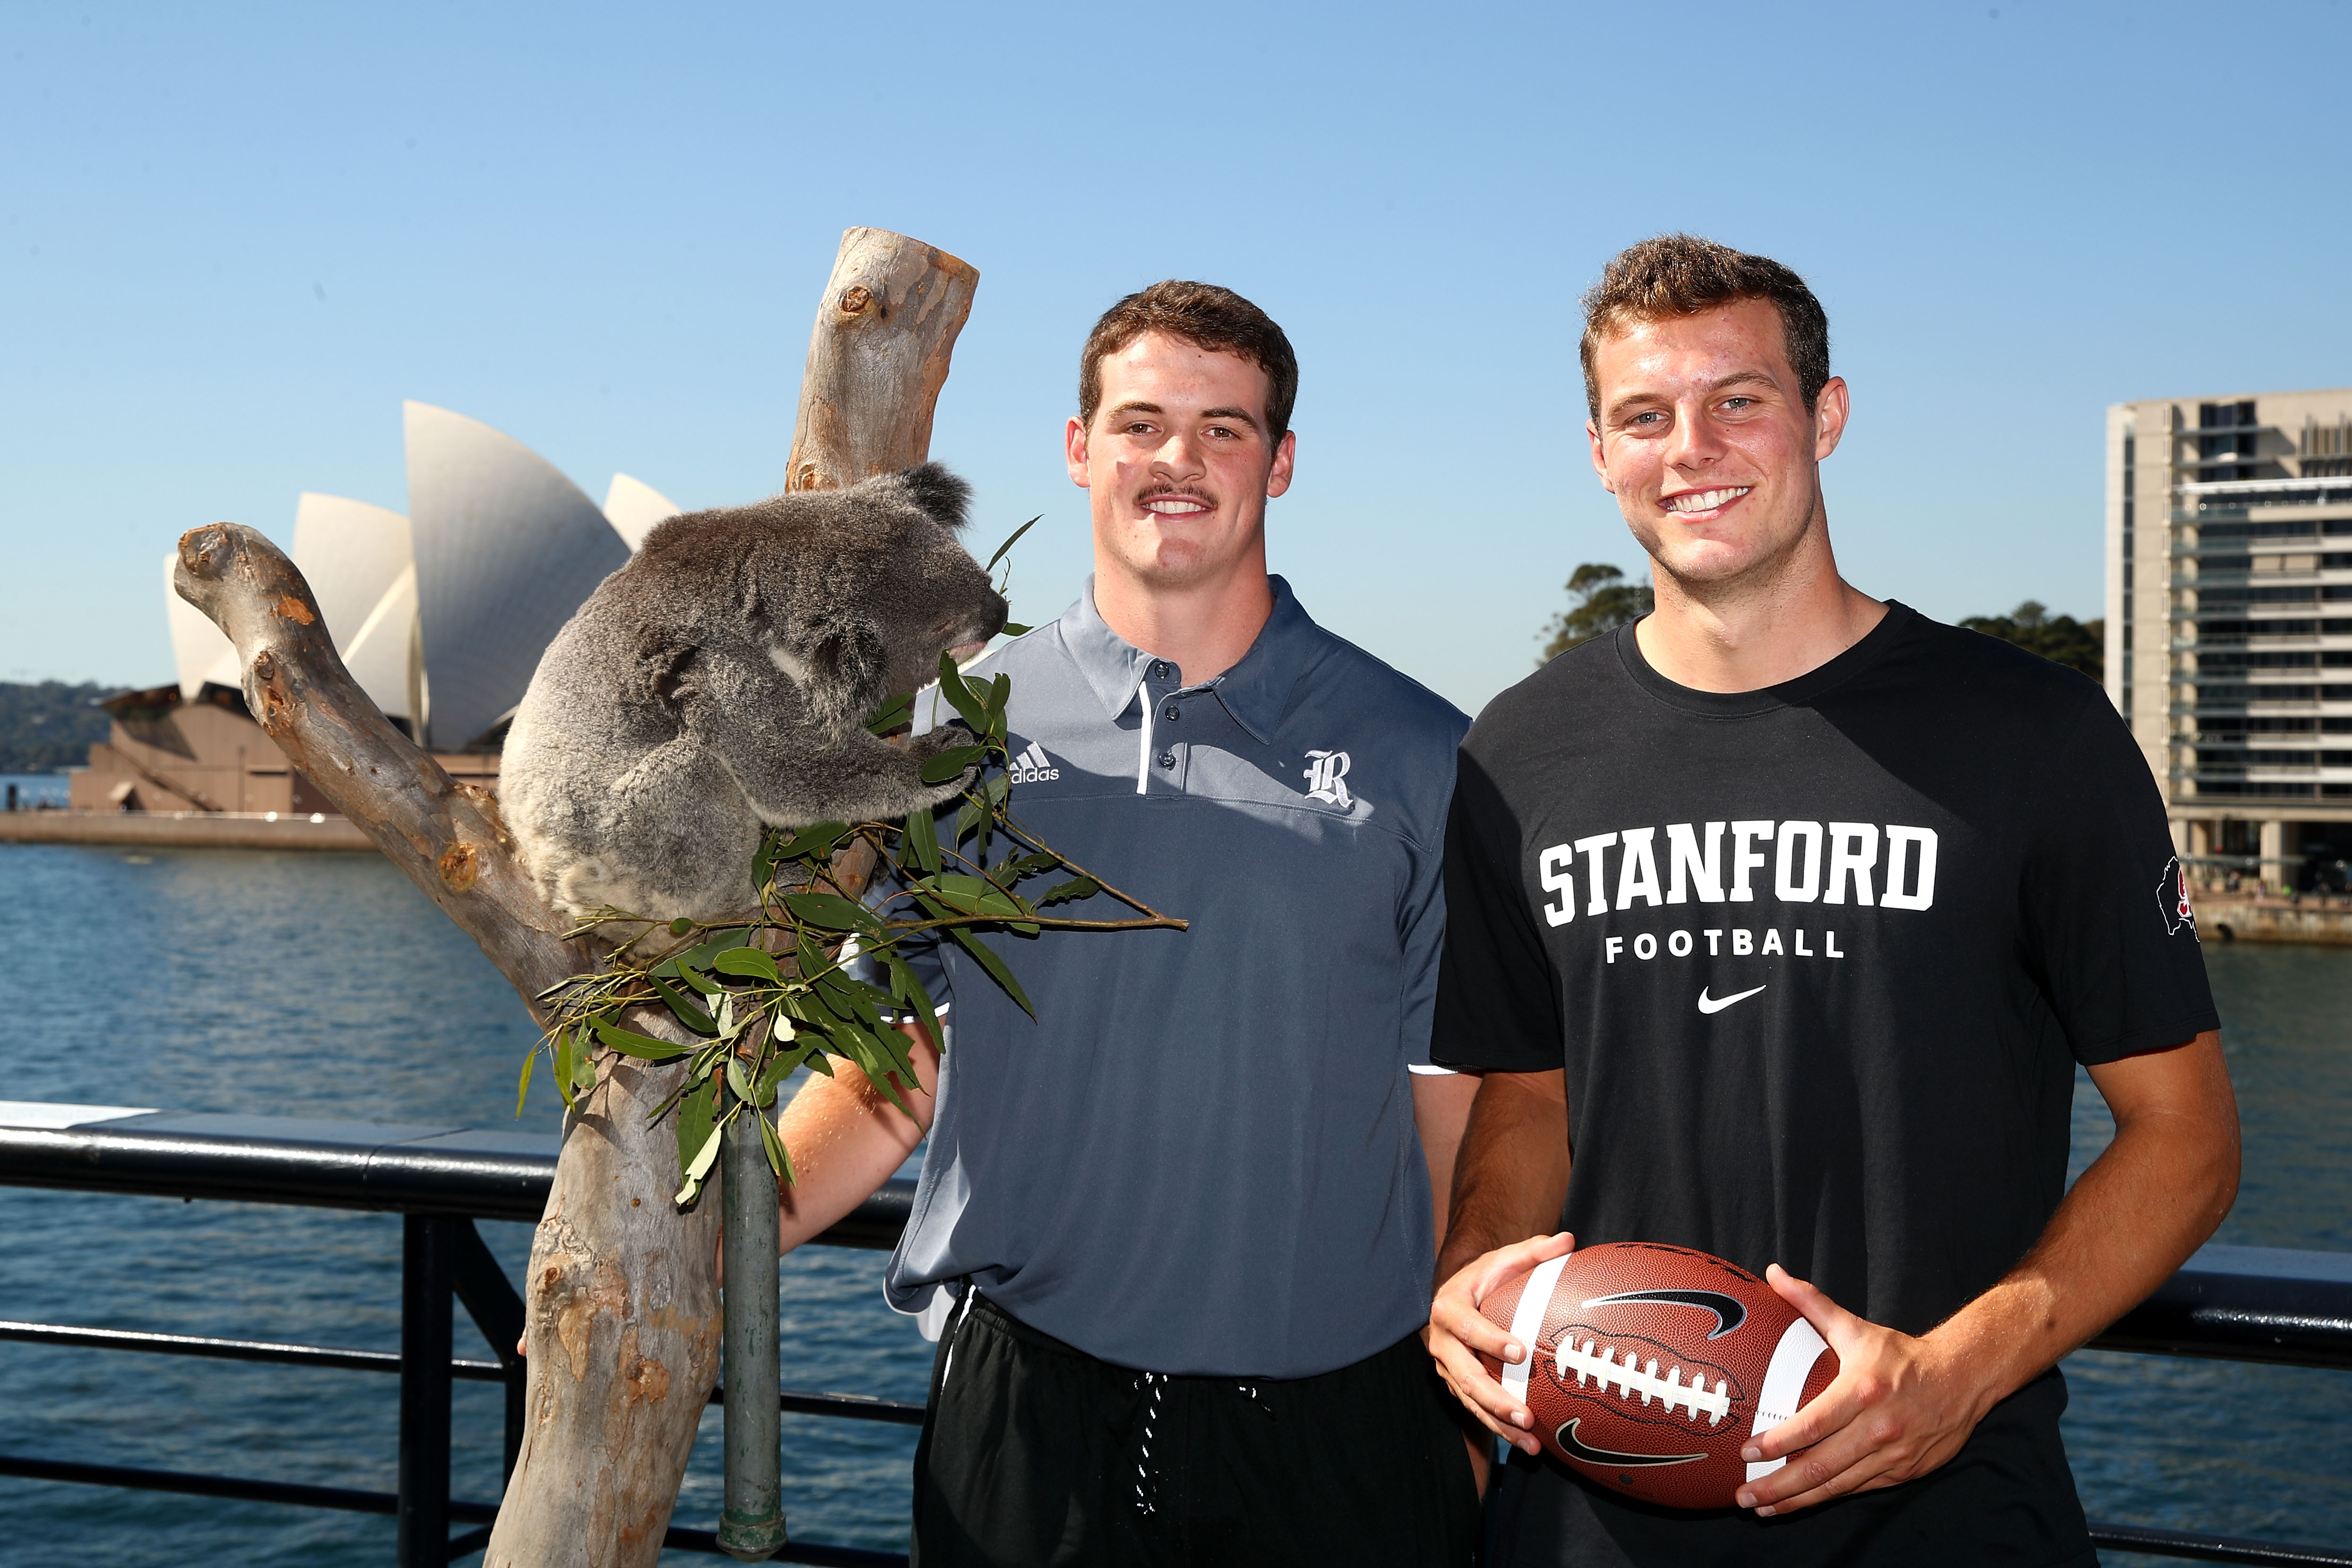 Stanford decision date in Sydney